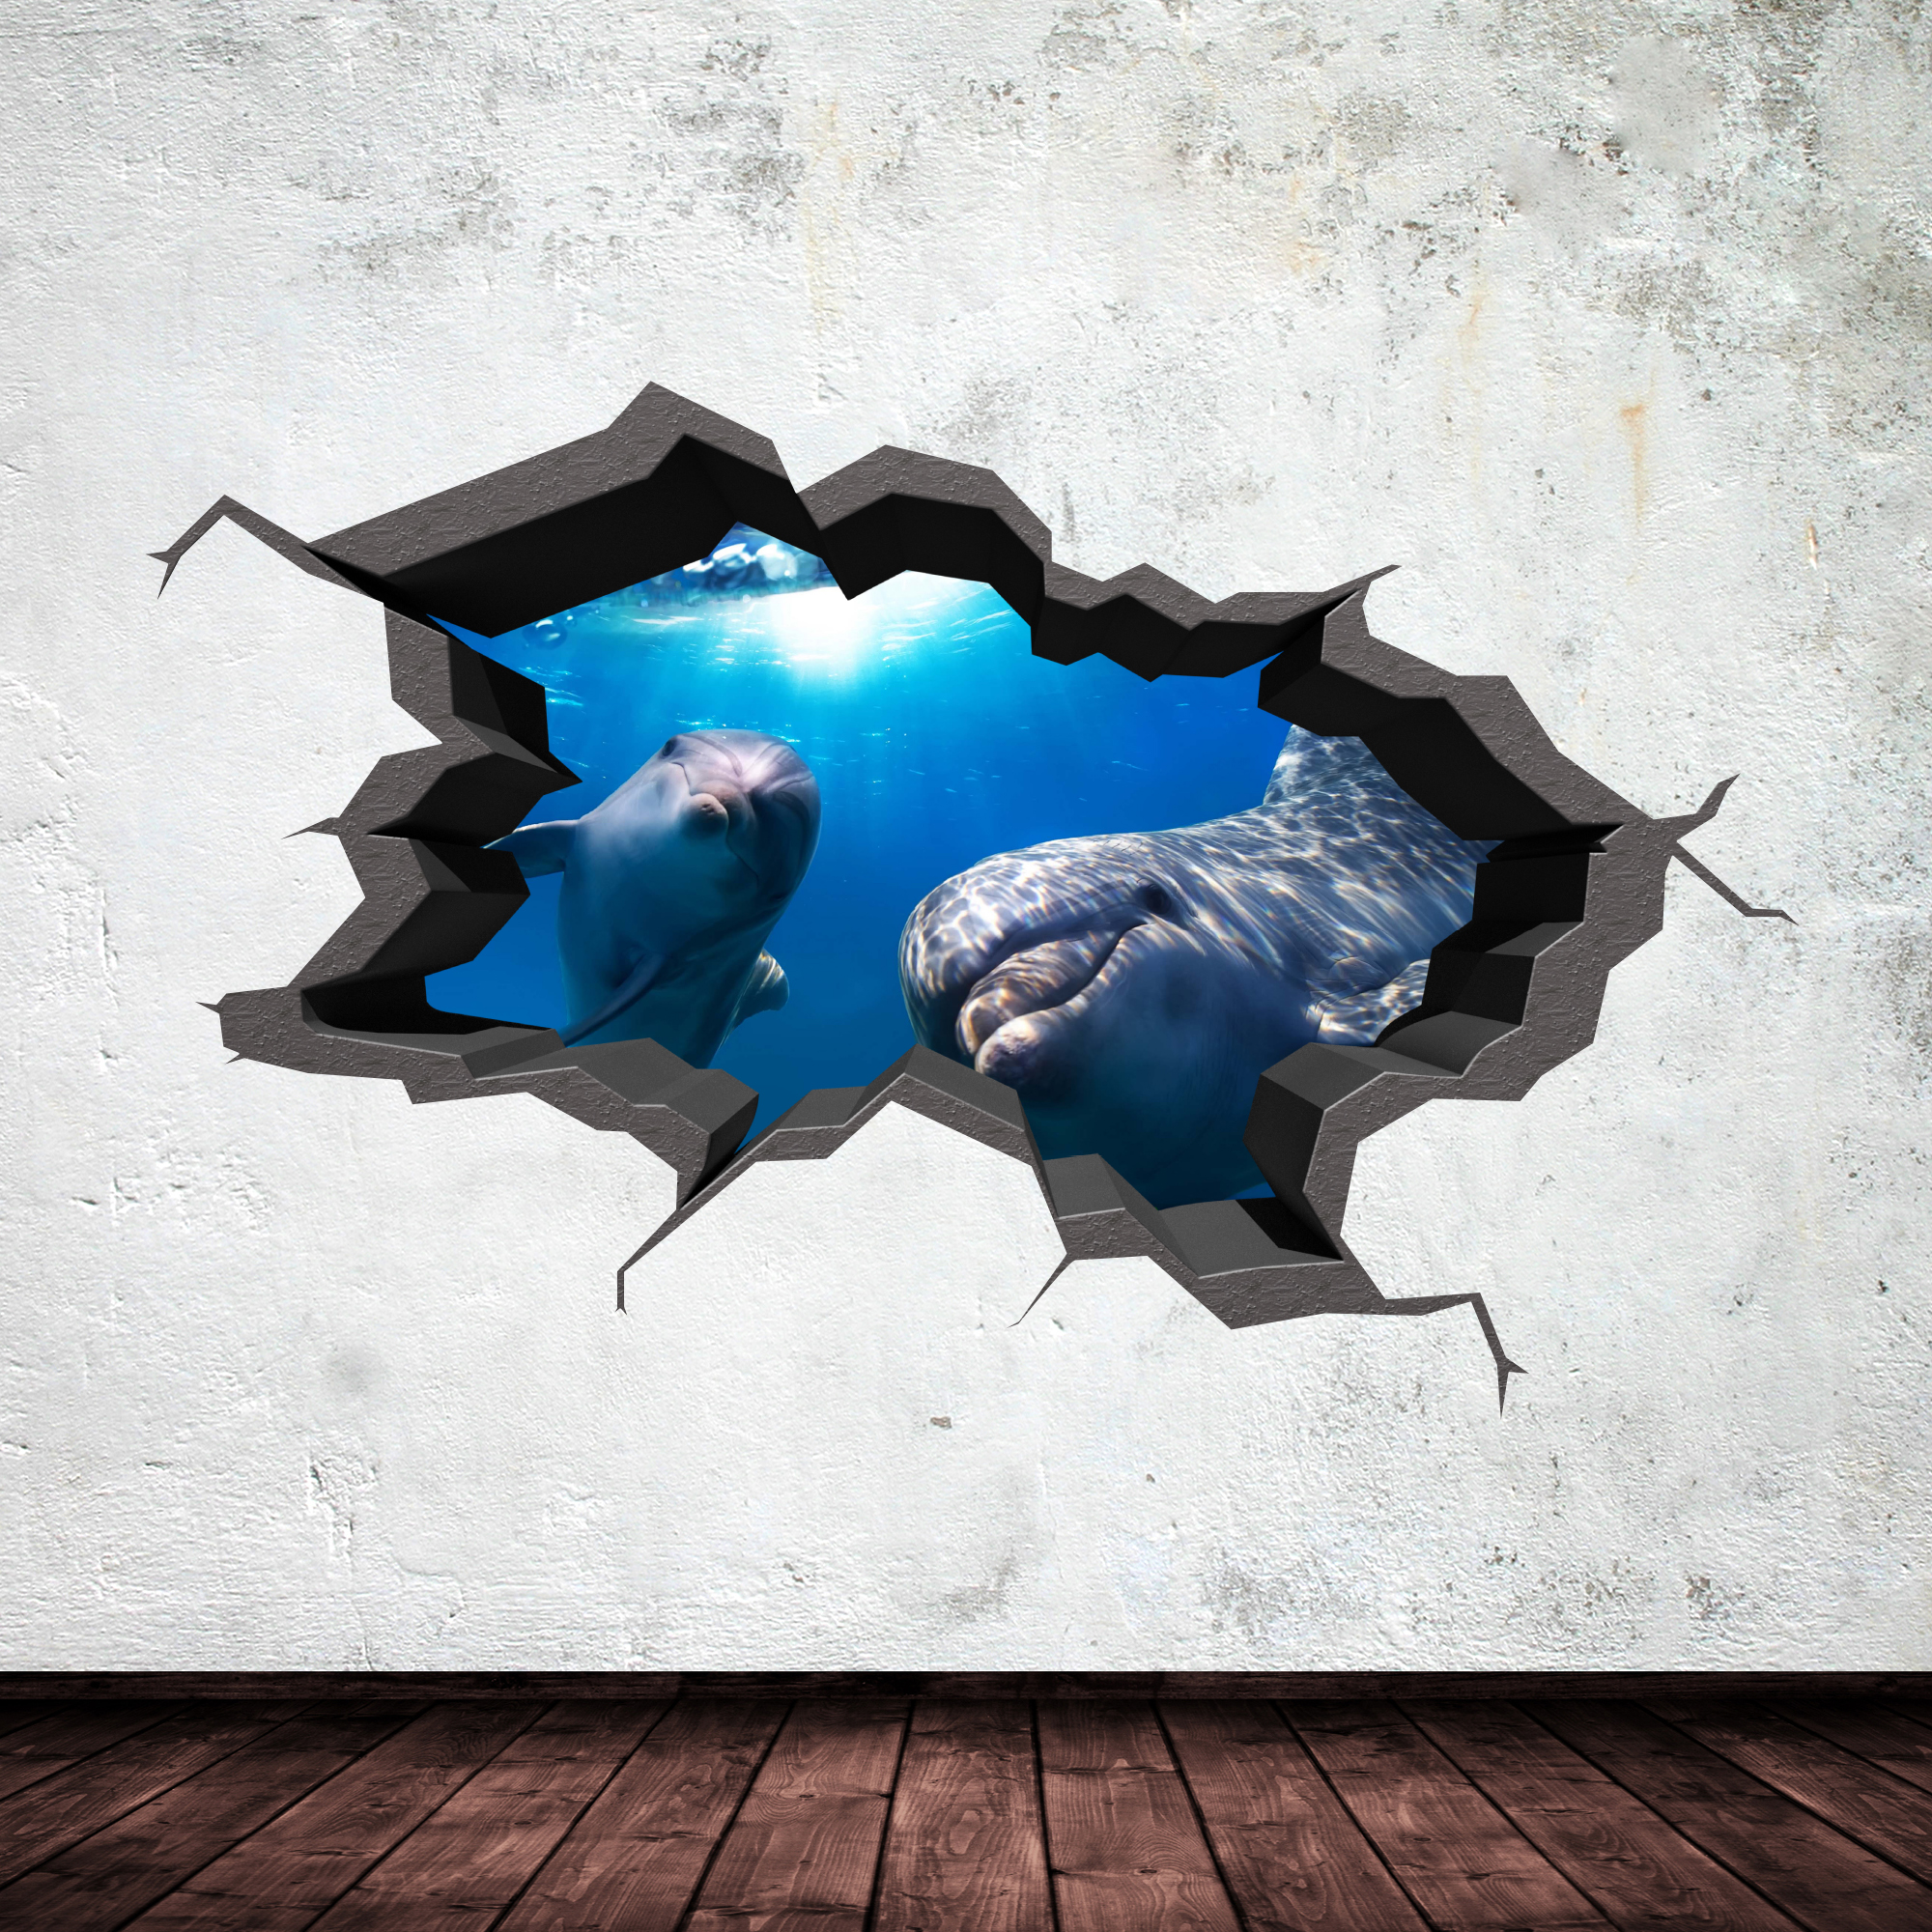 FULL COLOUR 3D AQUARIUM DOLPHIN UNDER WATER CRACKED 3D WALL ART STICKER  DECAL 9 Part 64